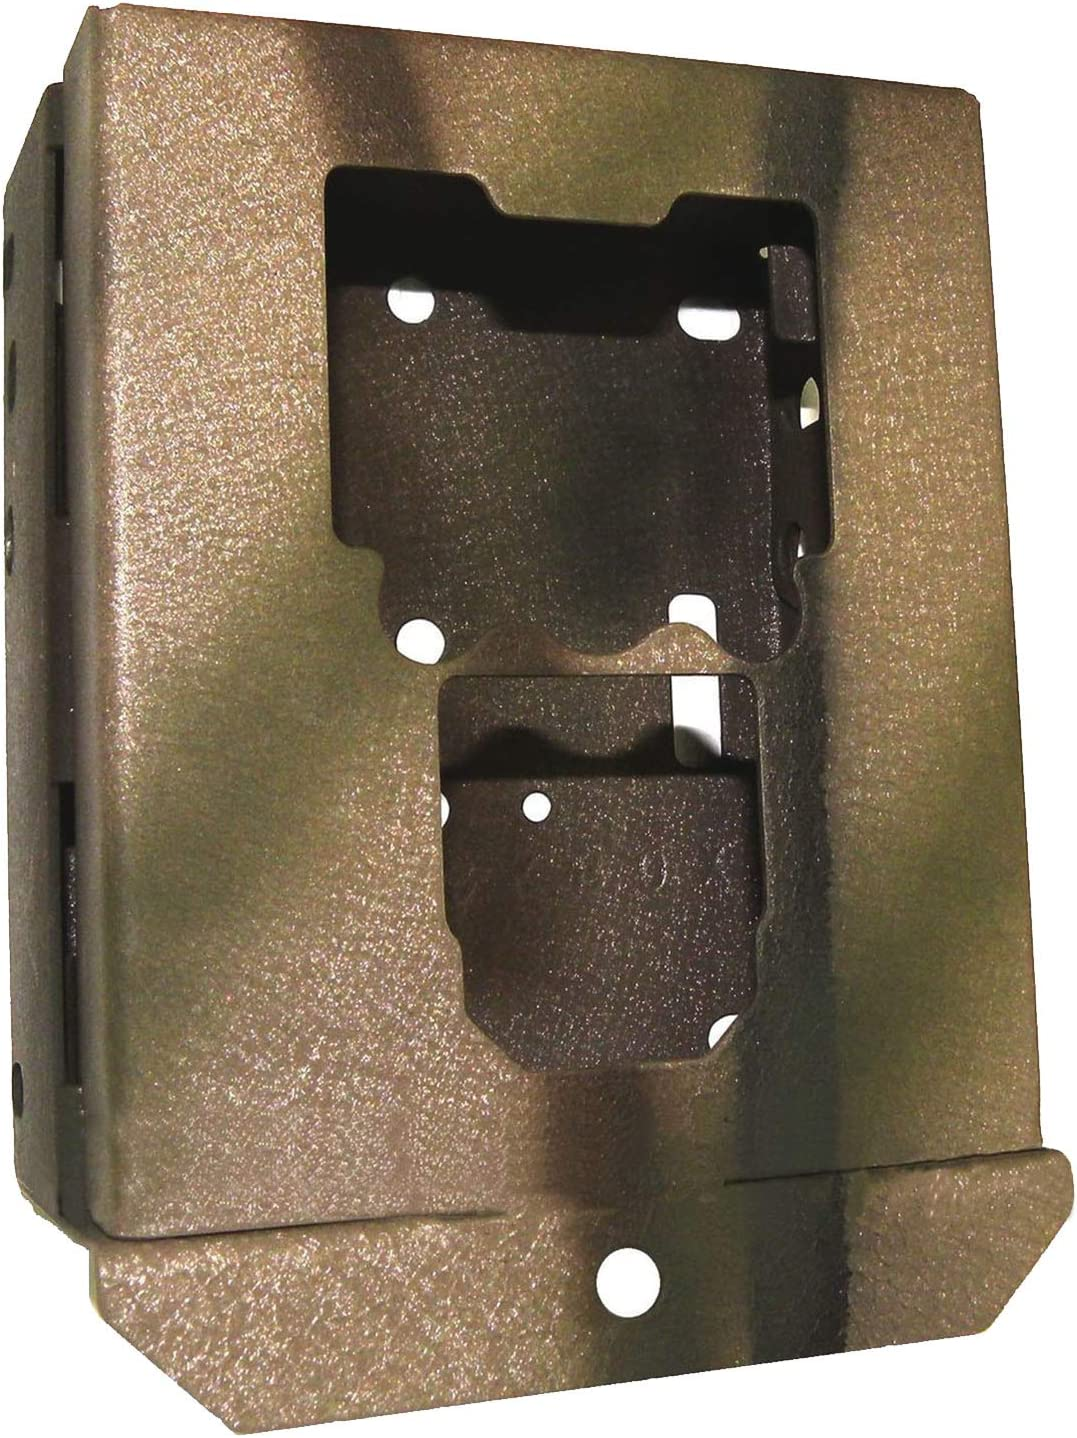 Camlockbox Security Box Compatible with Bushnell Trophy Cam HD Aggressor Models 119774c and 119776c